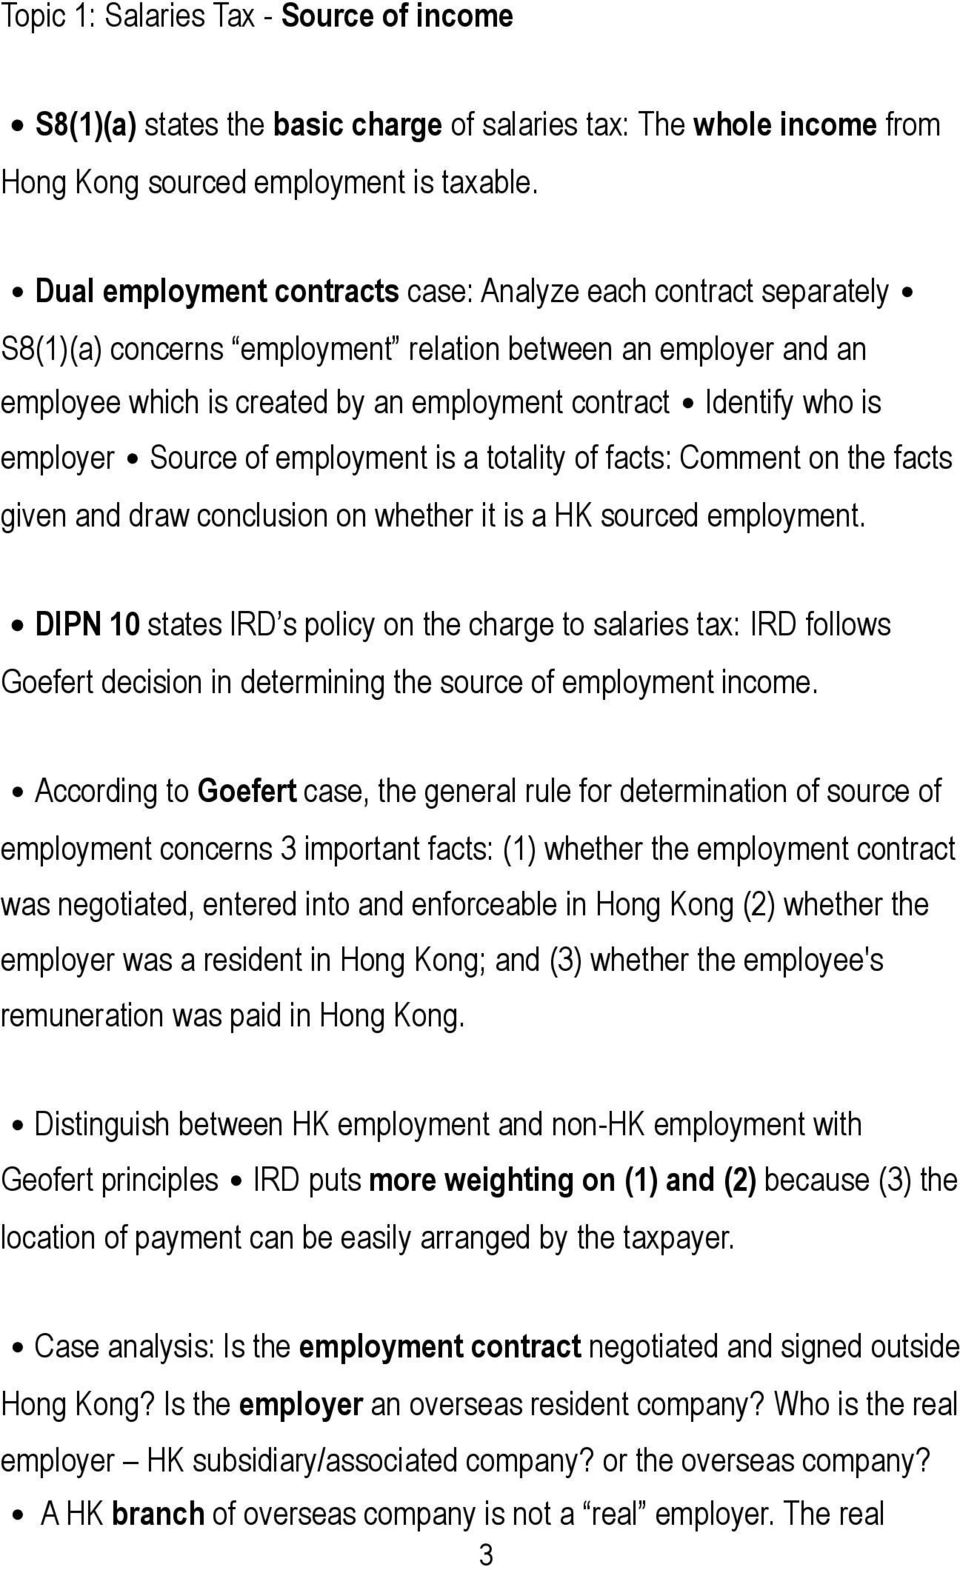 employer Source of employment is a totality of facts: Comment on the facts given and draw conclusion on whether it is a HK sourced employment.